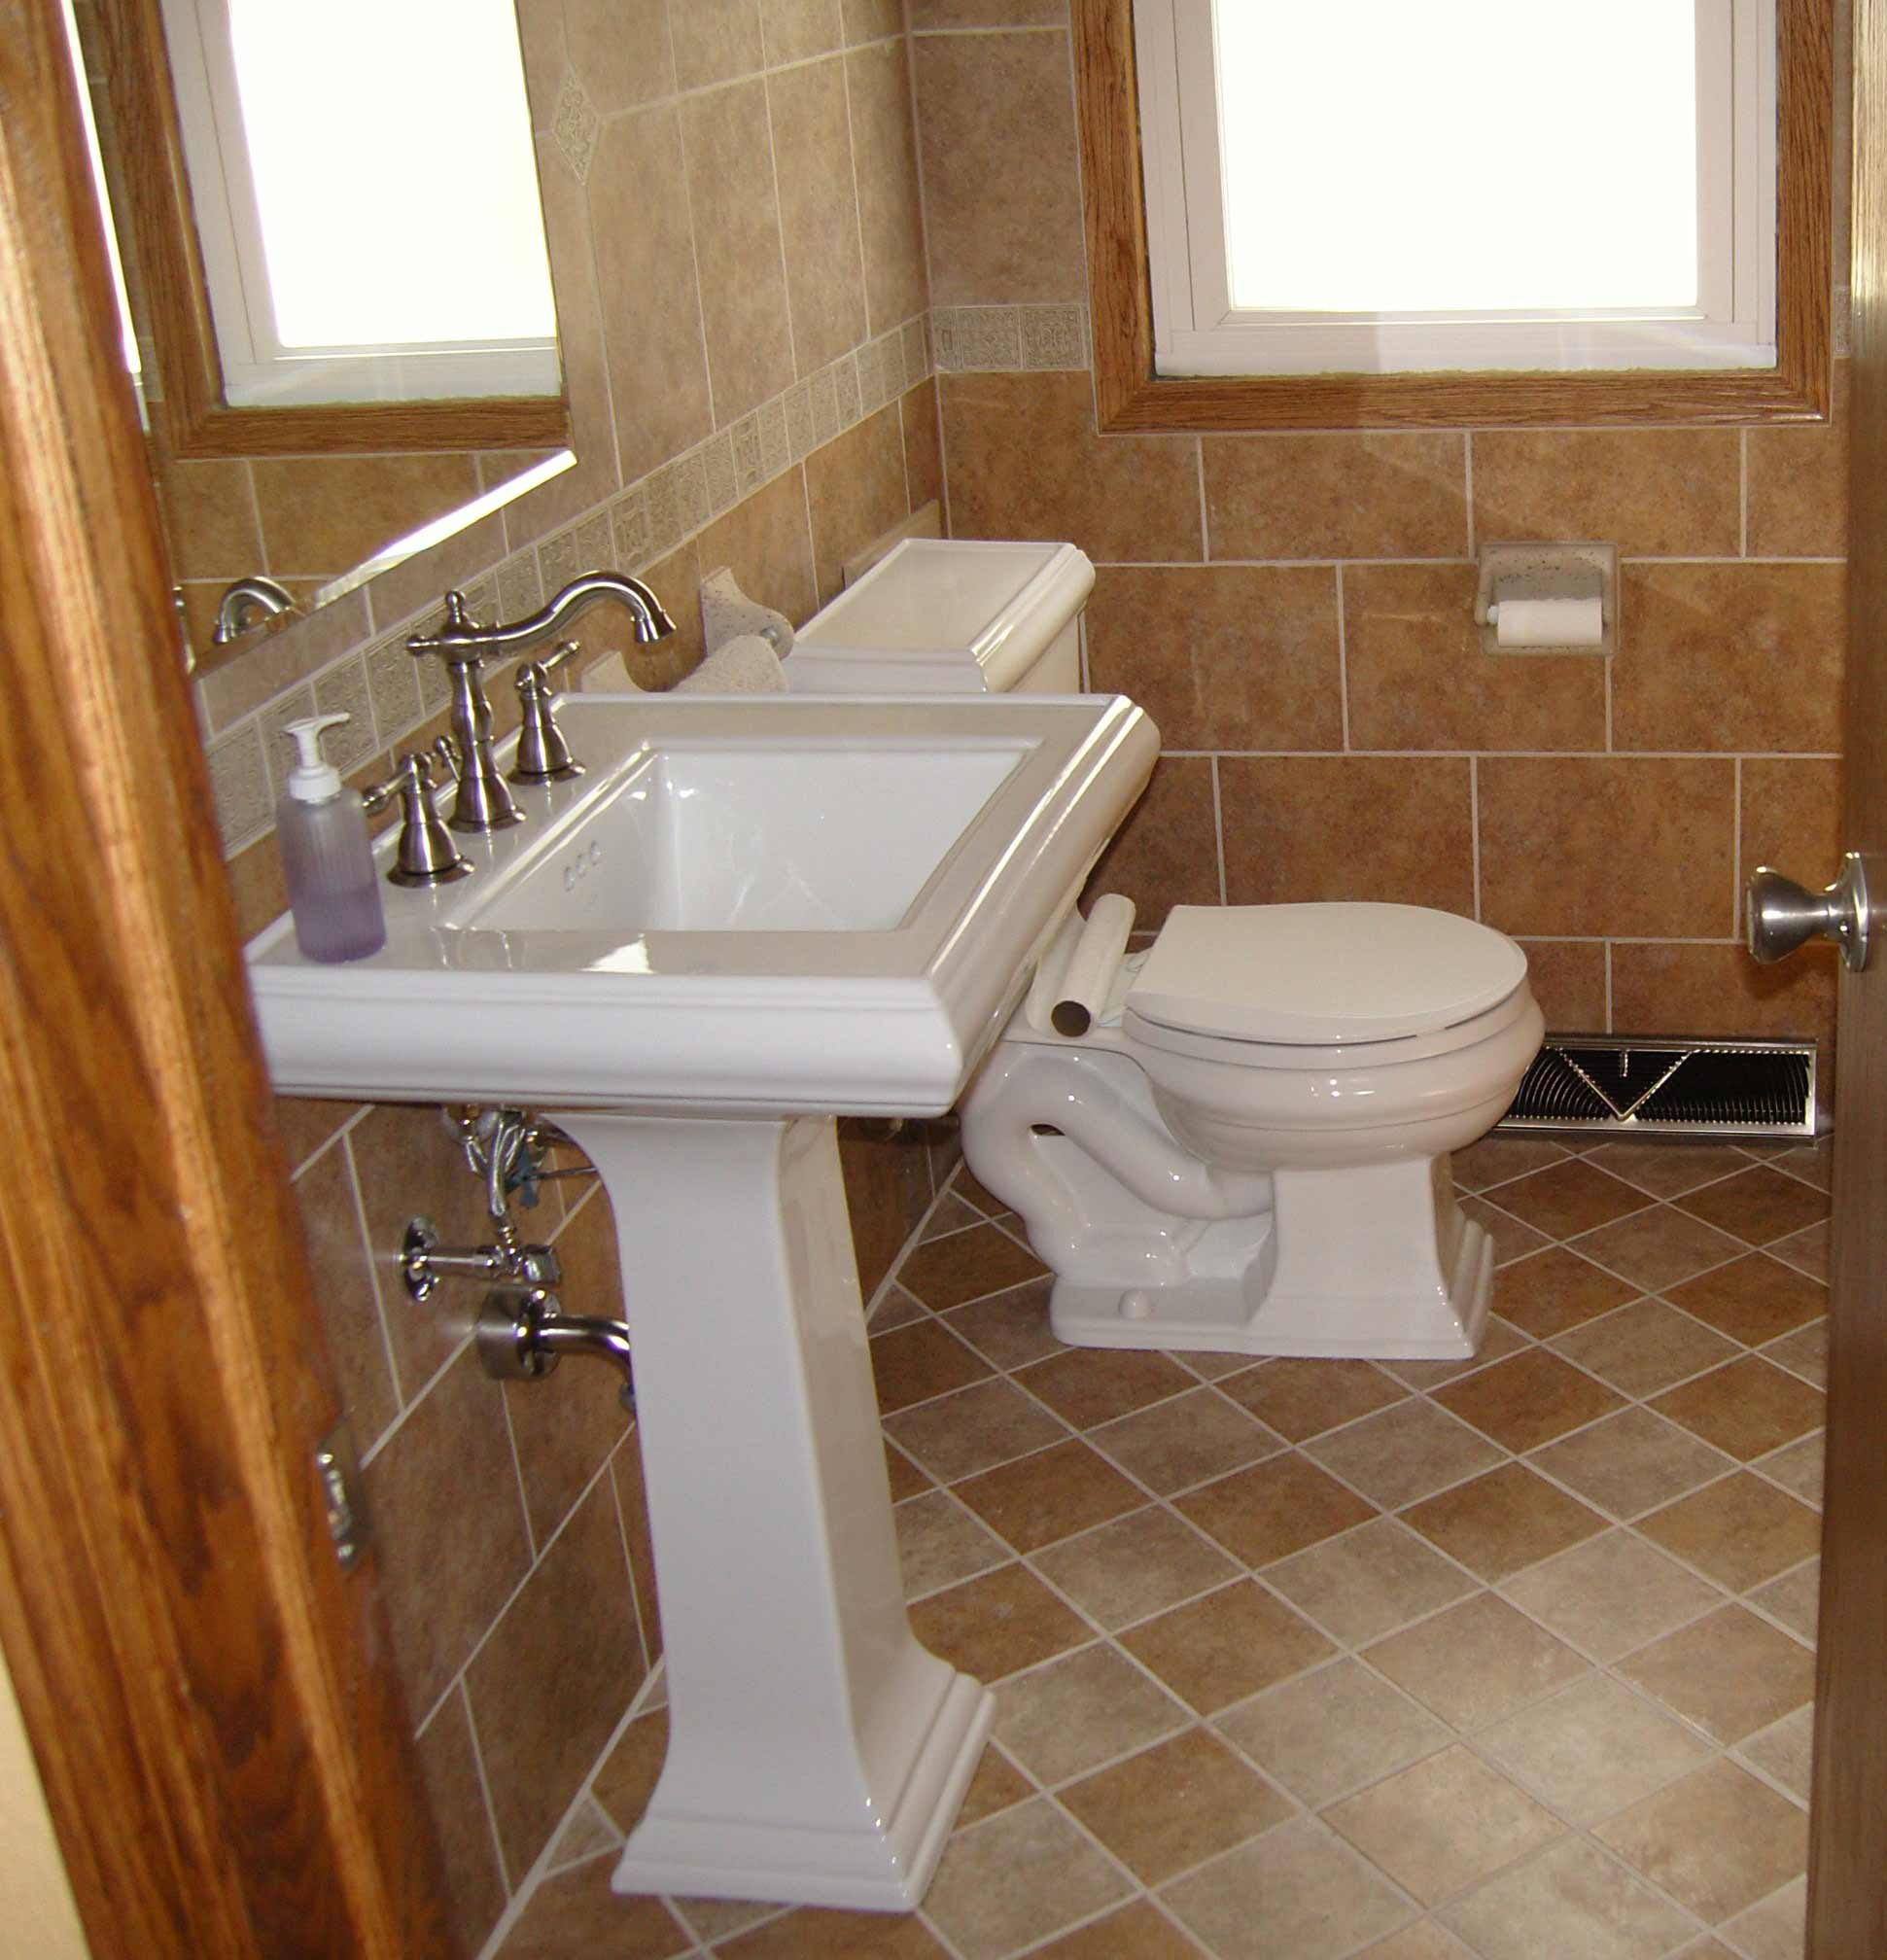 Classic White Pedestal Sink and Silver Faucet Used in Small Bathroom with Cream Bathroom Wall Tile